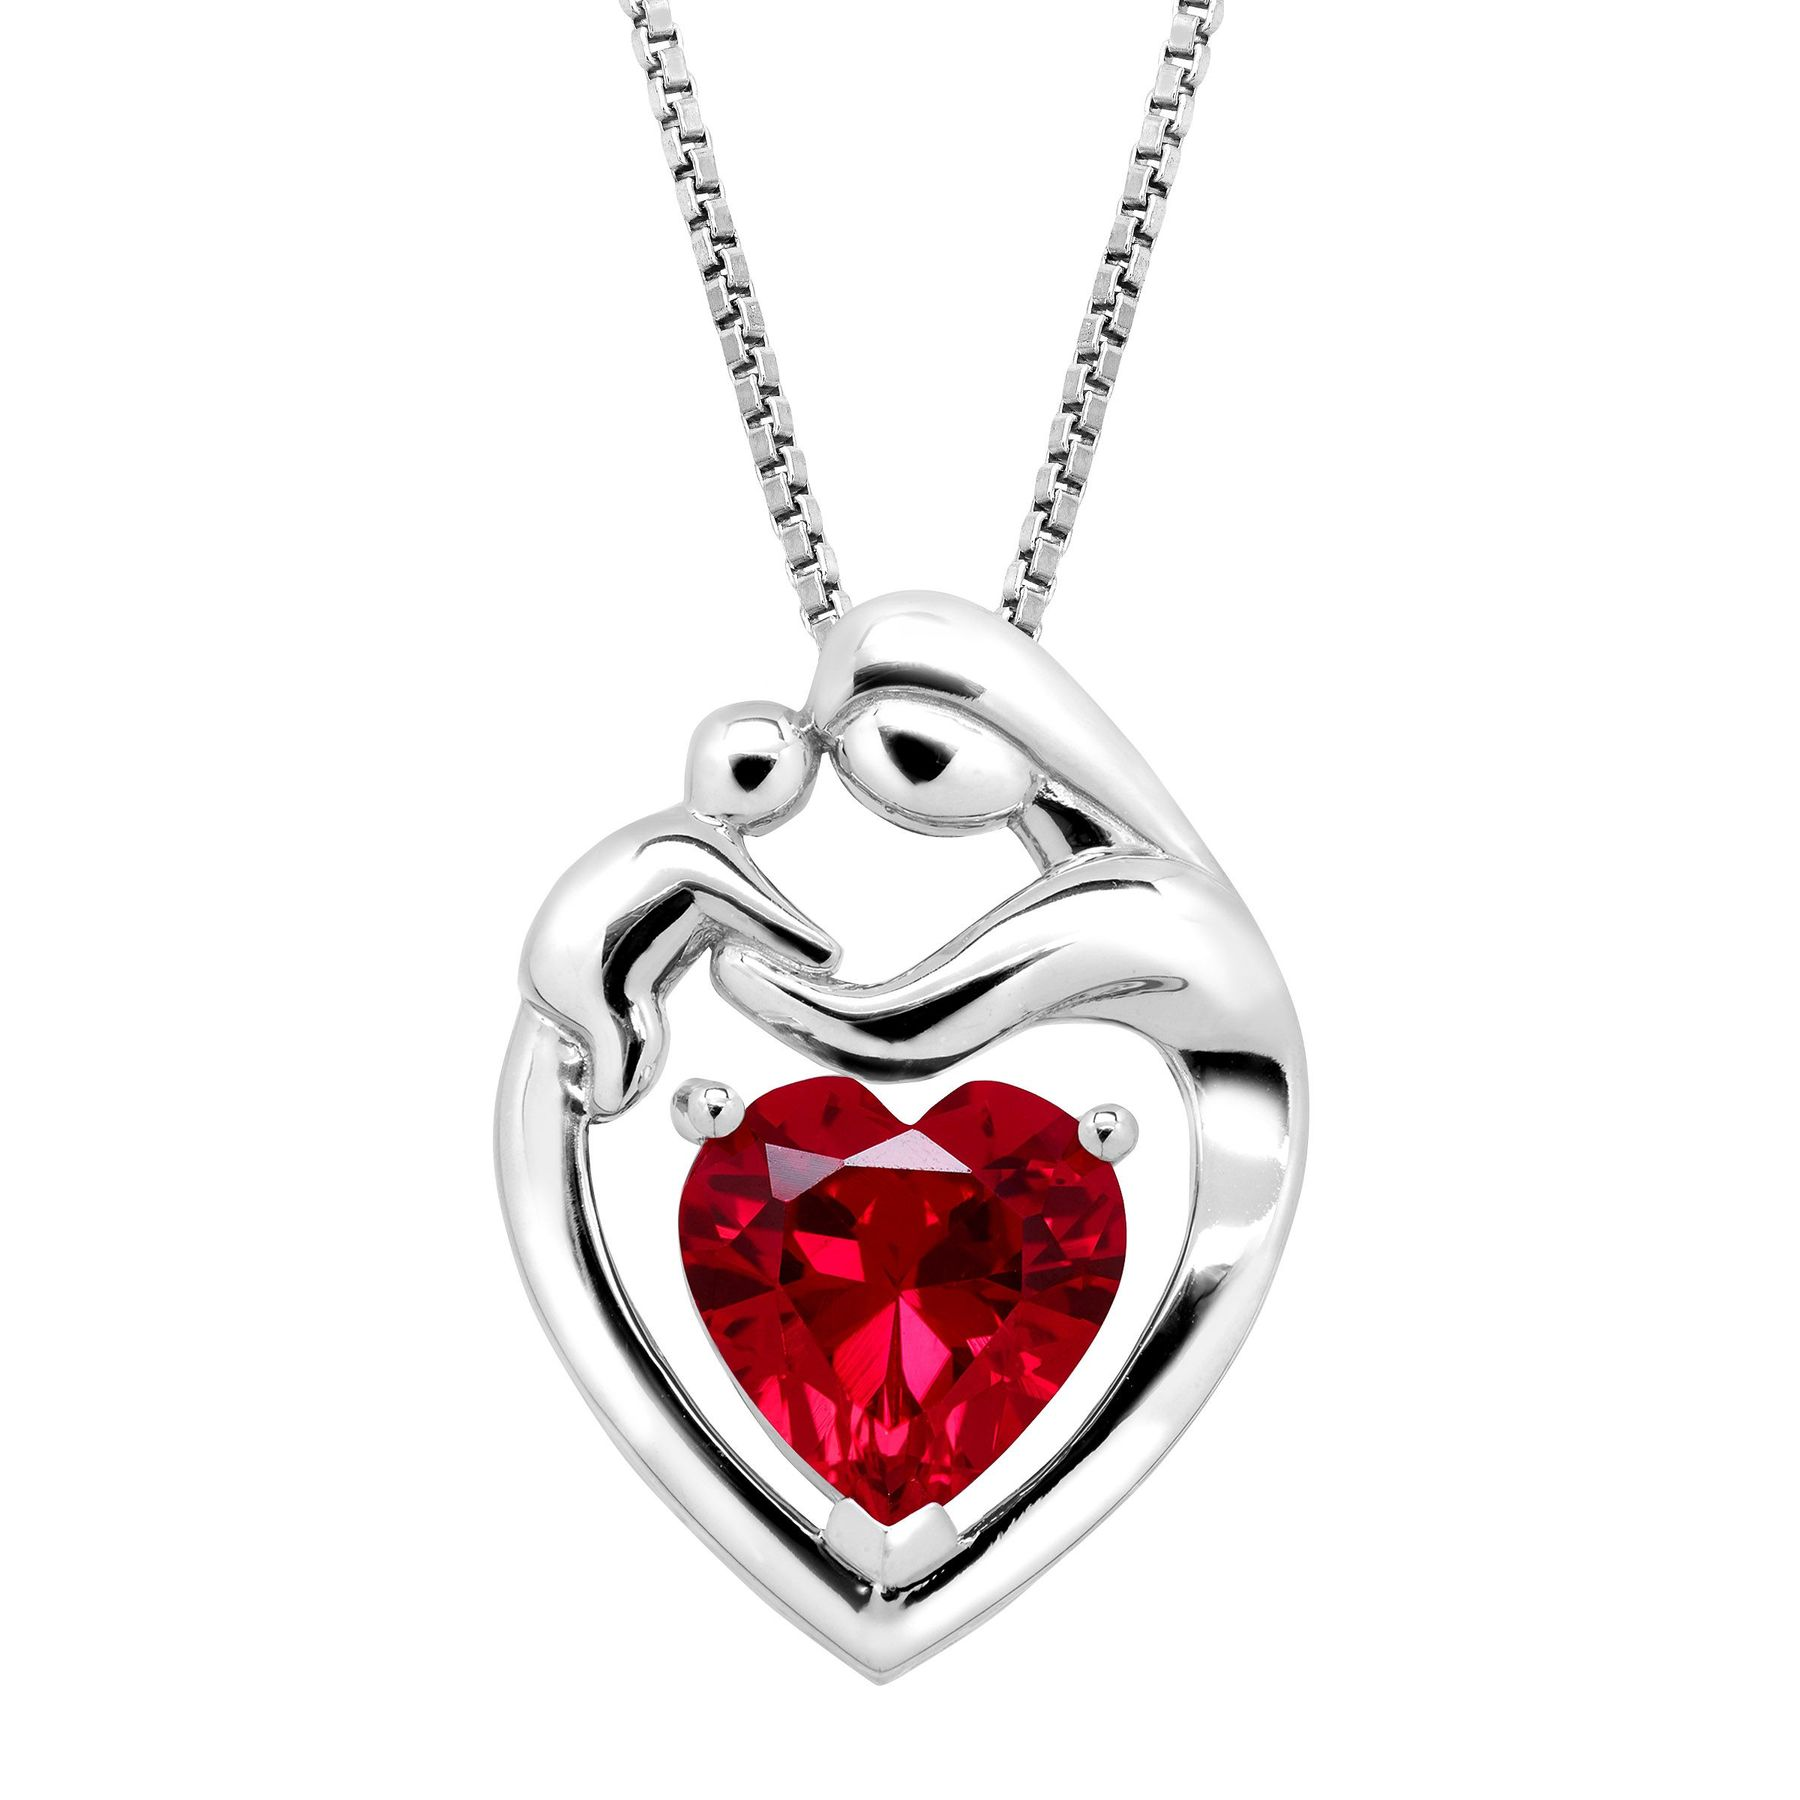 holding itm diamond heart hands child pendant mother shaped necklace inlay